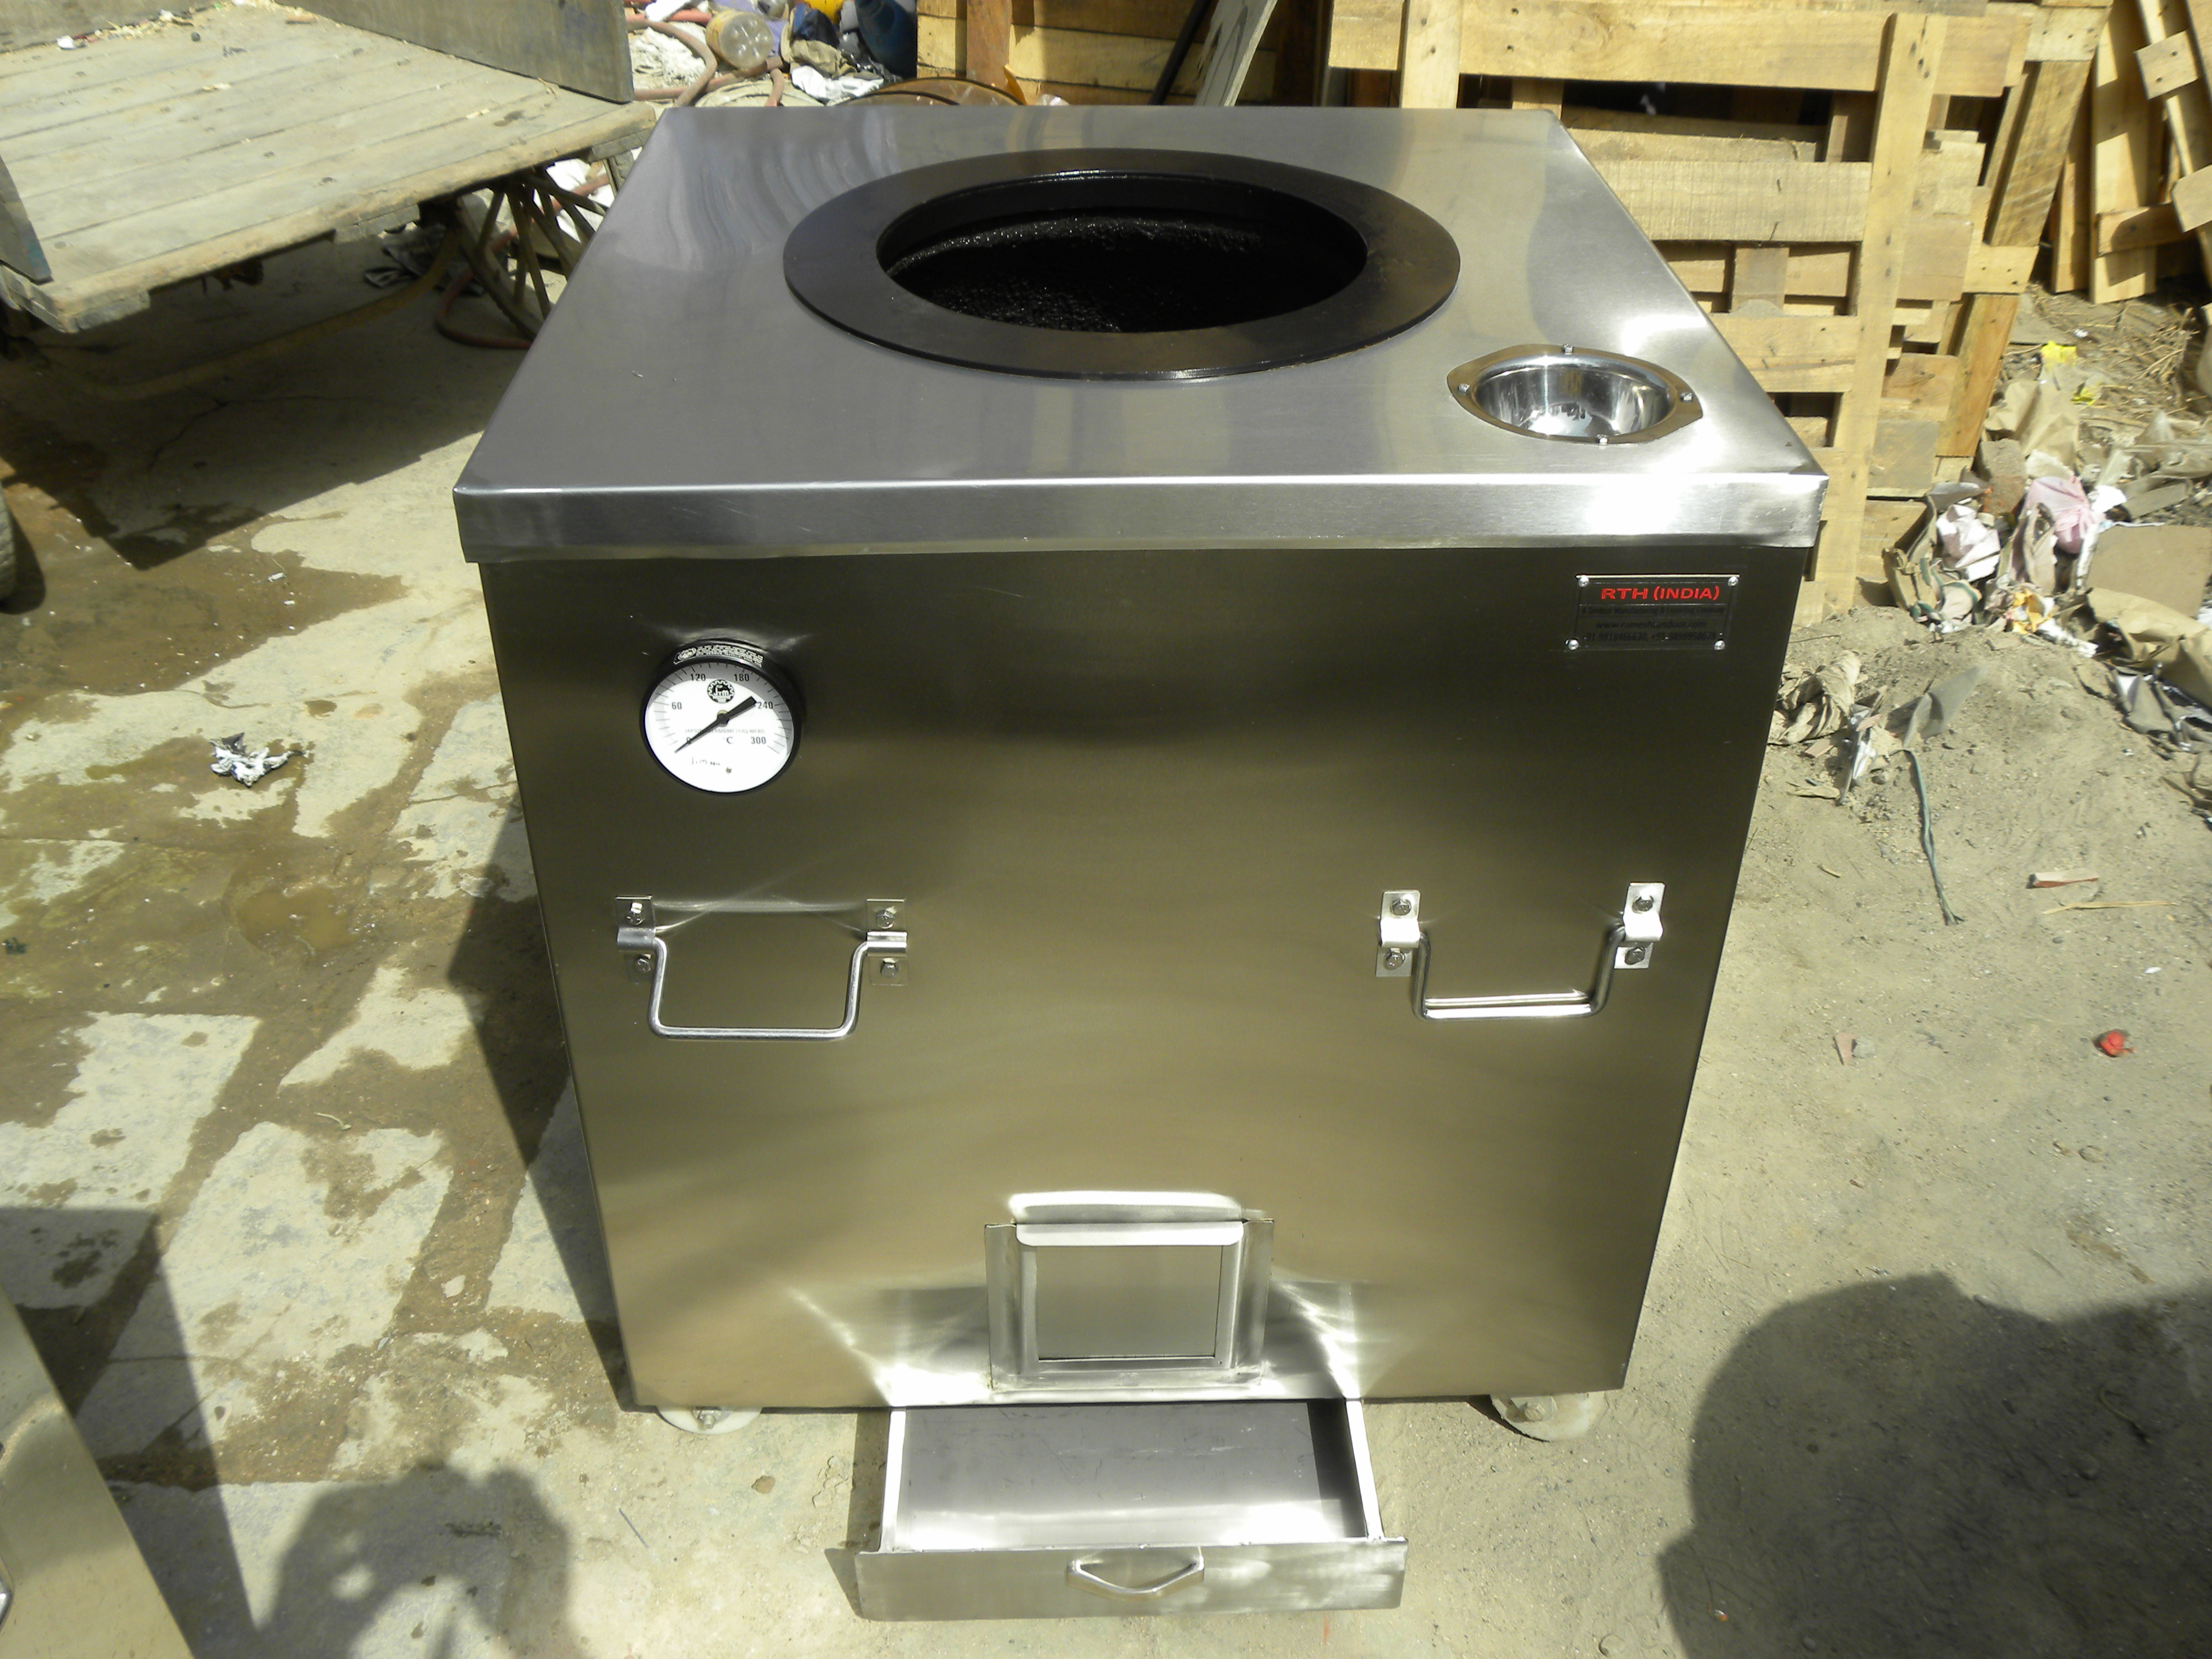 FileCharcoal Fired S.Steel Body Tandoor with ash tray u0026 temp. & File:Charcoal Fired S.Steel Body Tandoor with ash tray u0026 temp ...